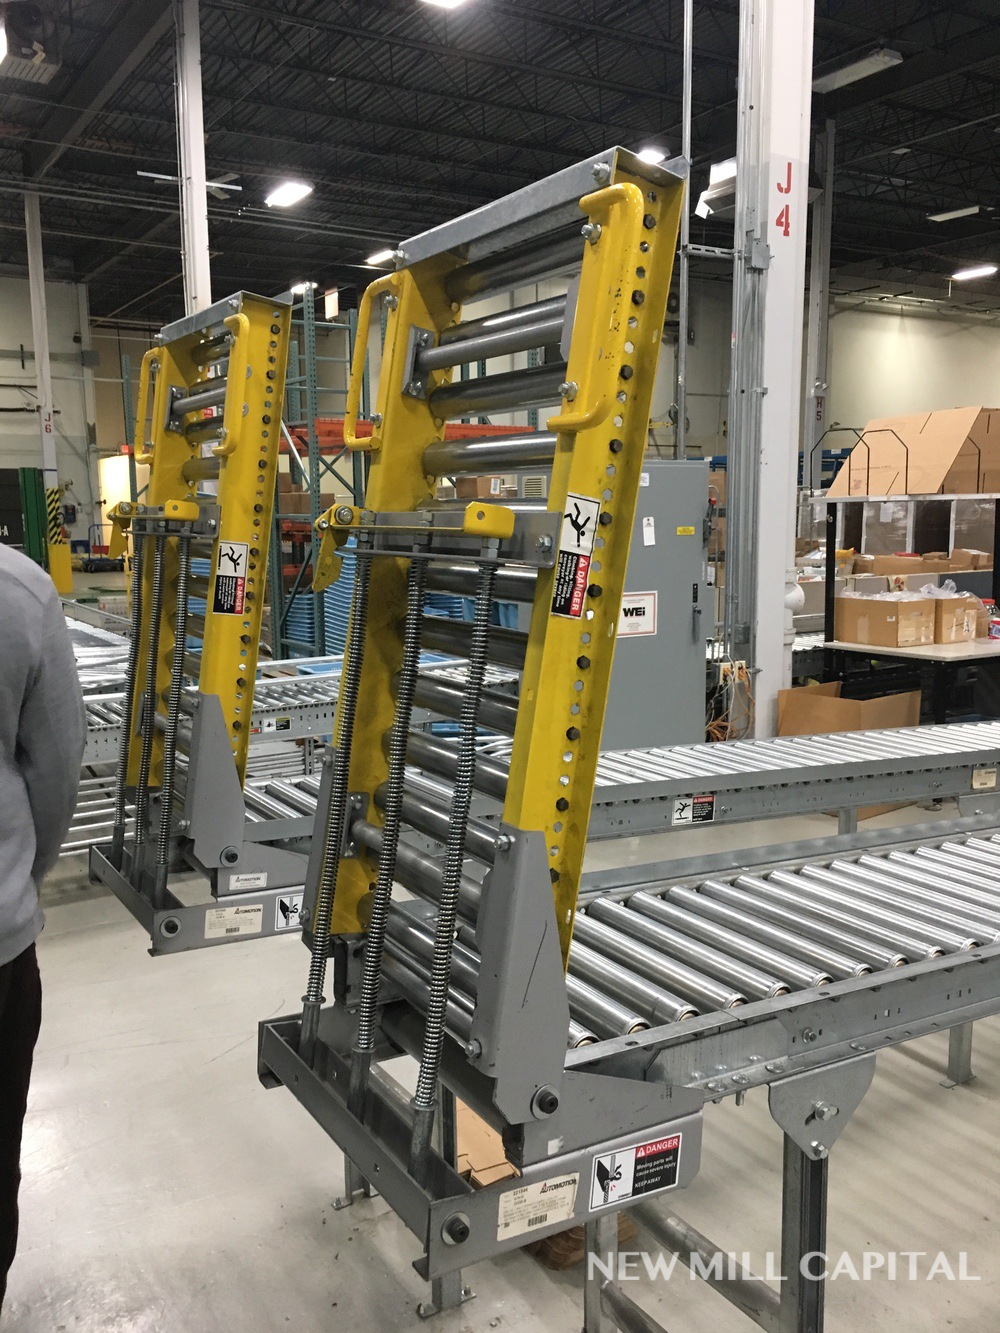 Lot 51 - Spring Assisted Roller Conveyor & Gate, Approx 20ft OA Length, 15in Wide Rol | Rig Fee: $150